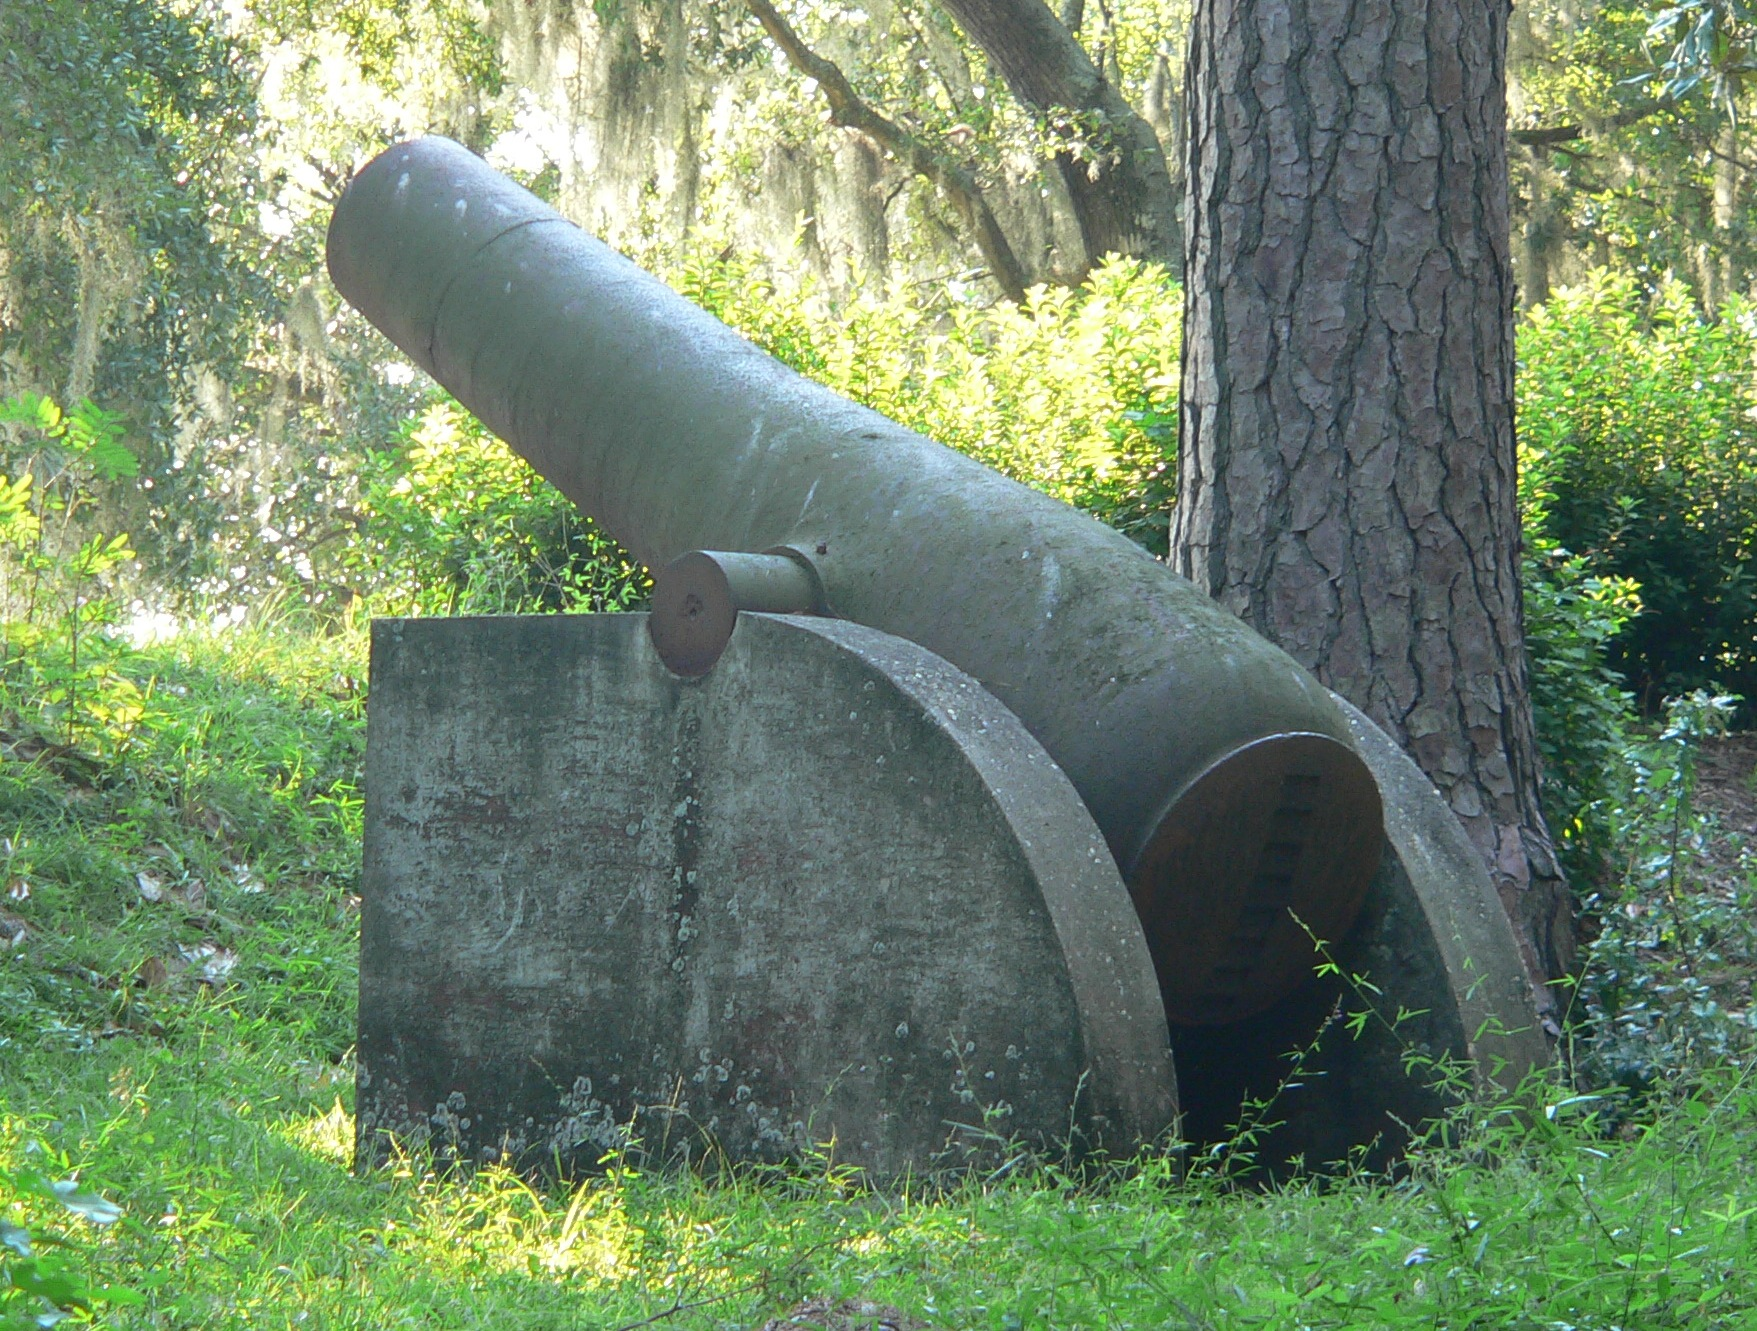 One of the canons on display